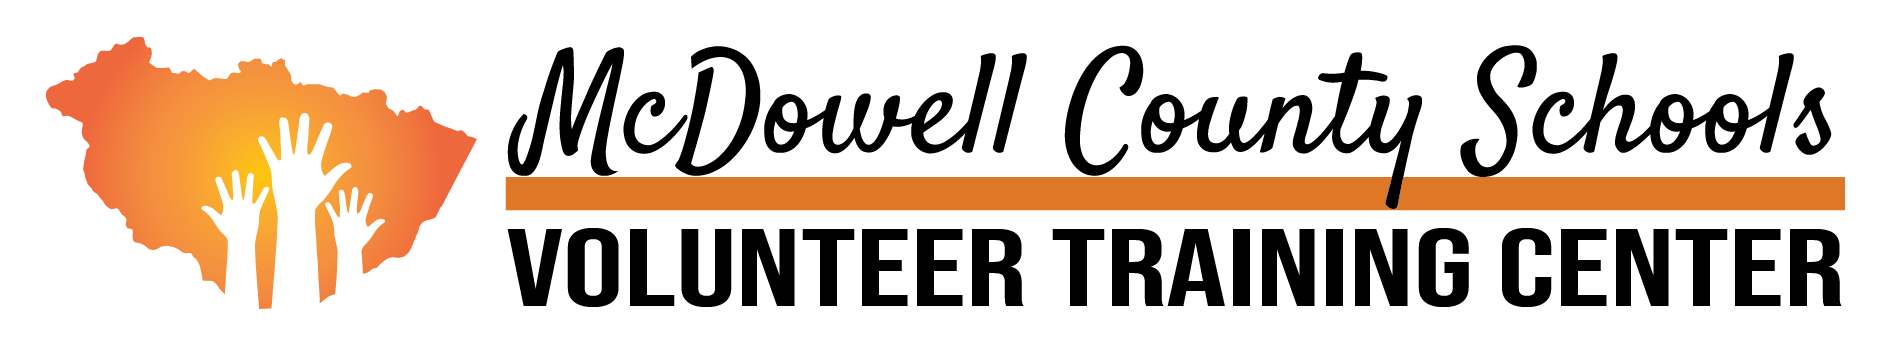 McDowell County Schools Volunteer Training Center Logo